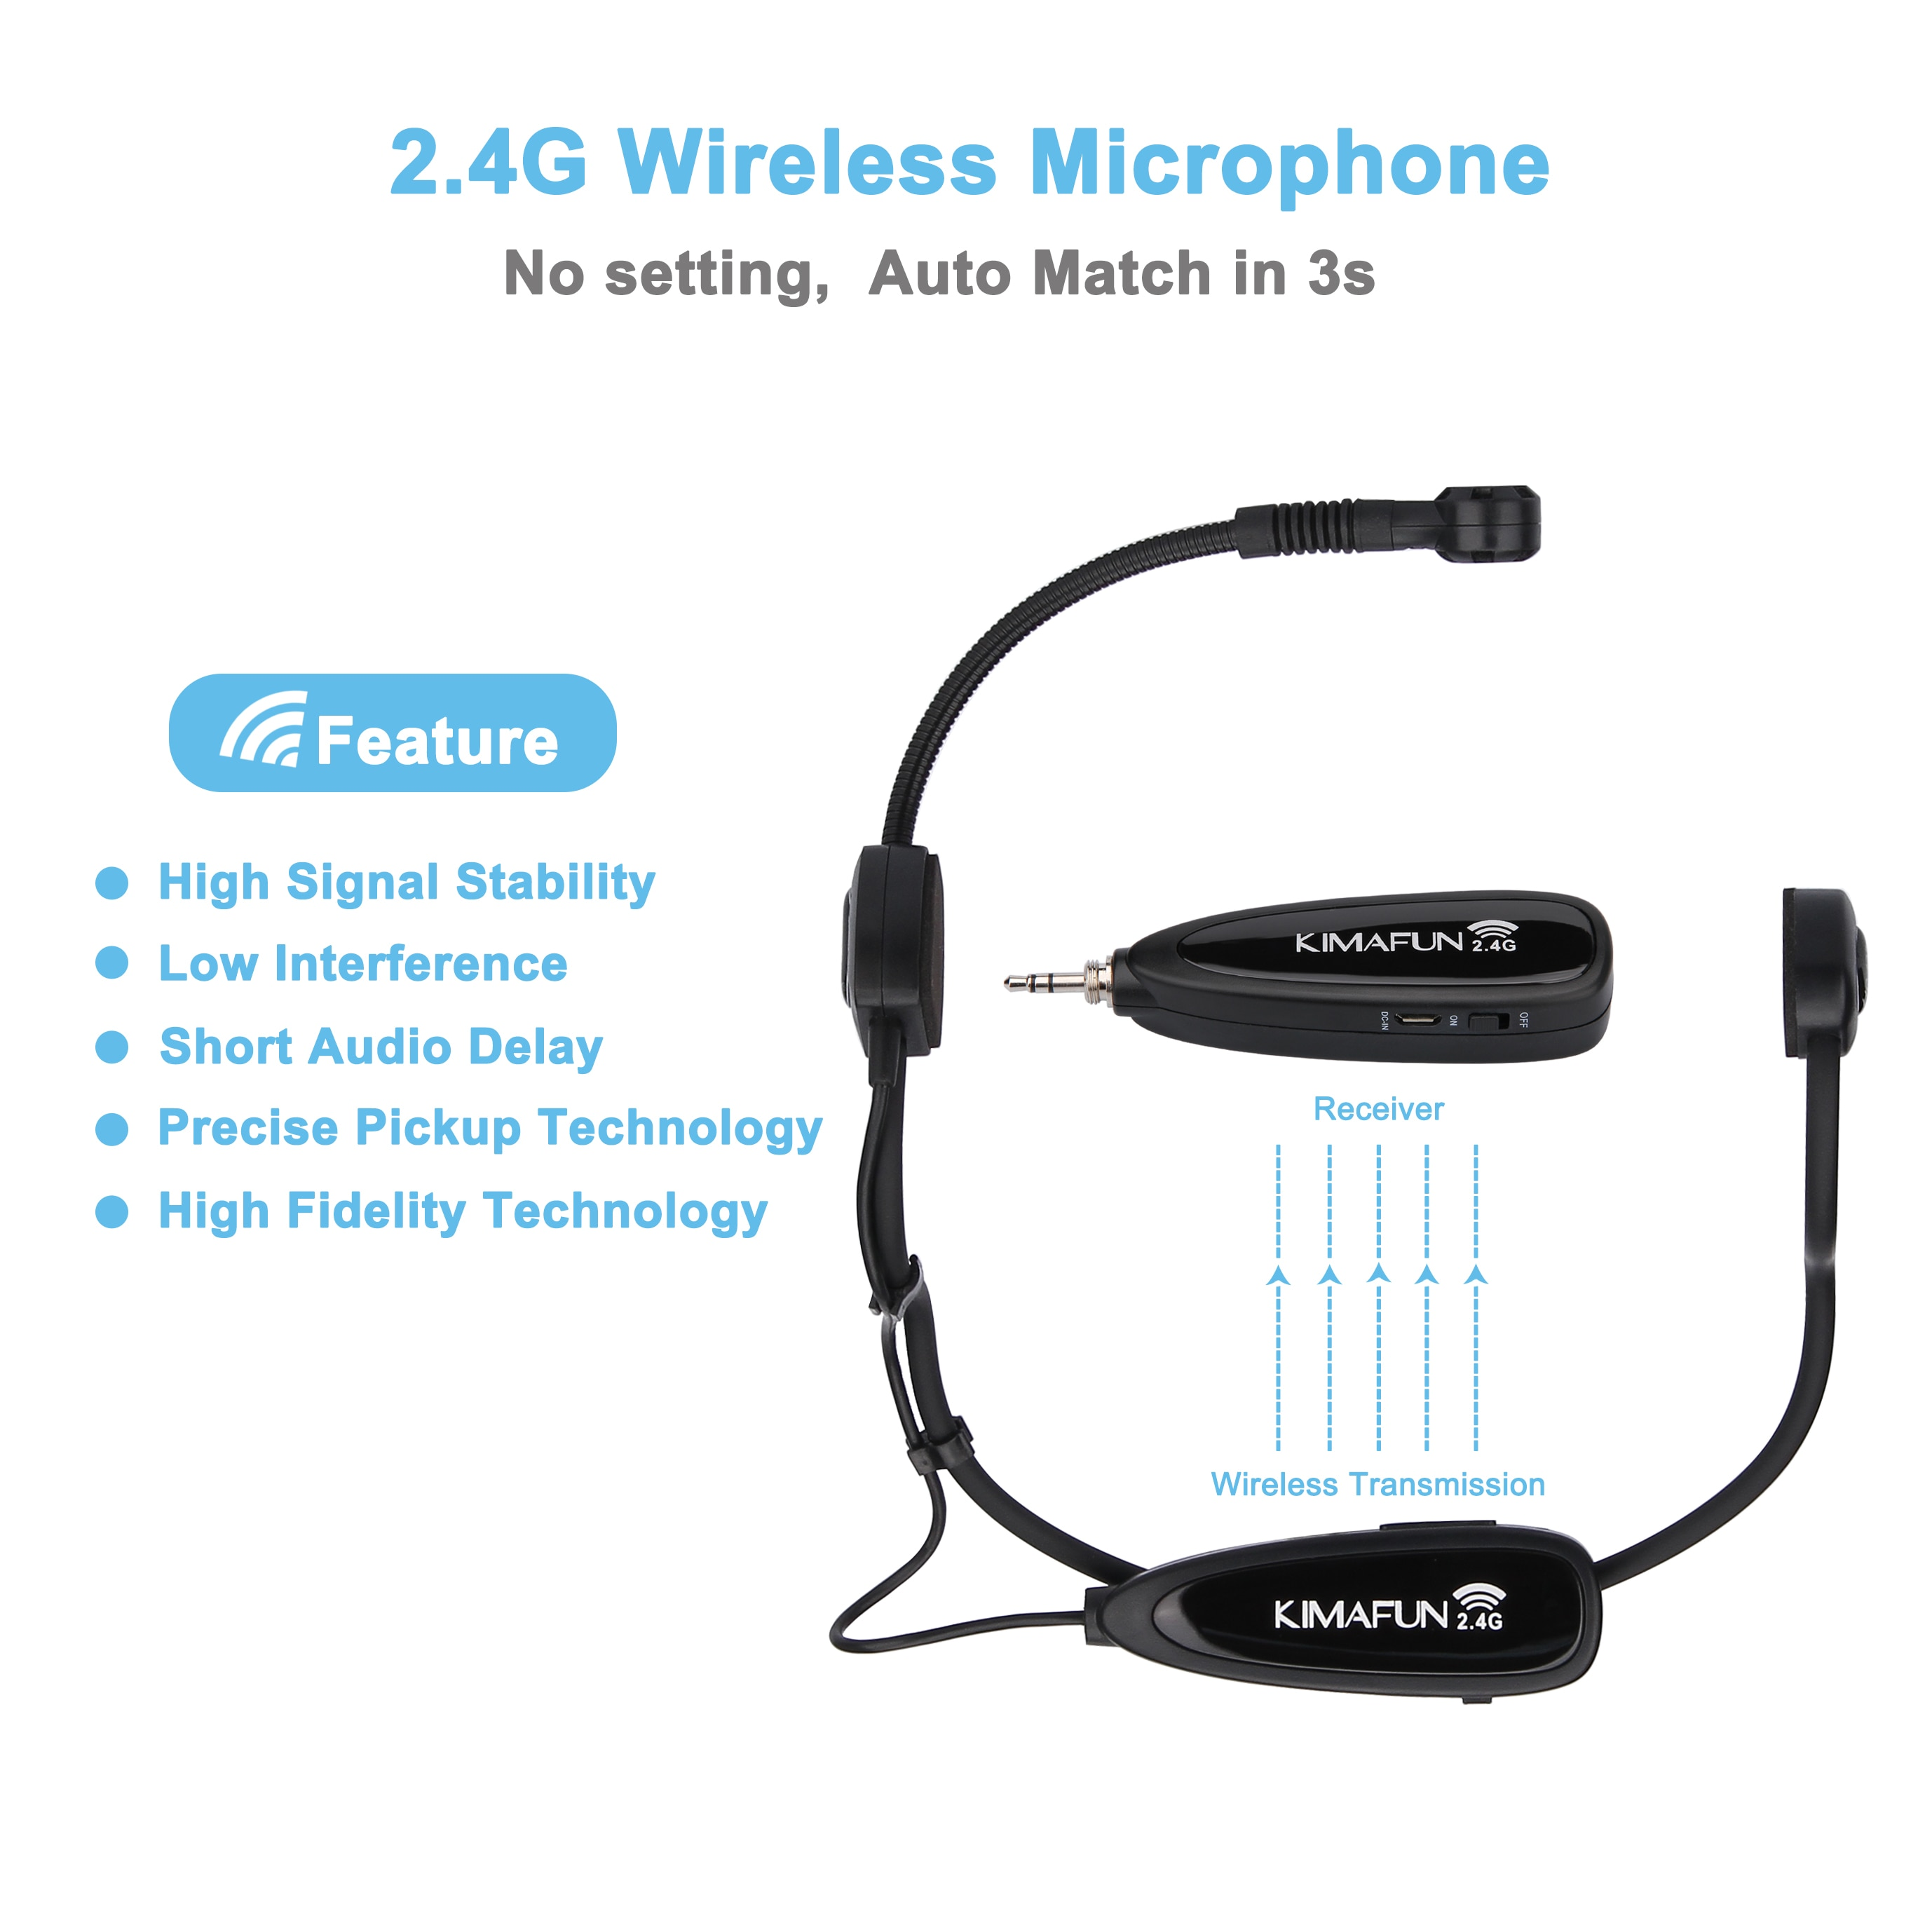 KIMAFUN Wireless Headset Microphone System for iPhone,DSLR Camera,PA Speaker,Youtube,Podcast,Video Recording,Conference,Vlogging enlarge